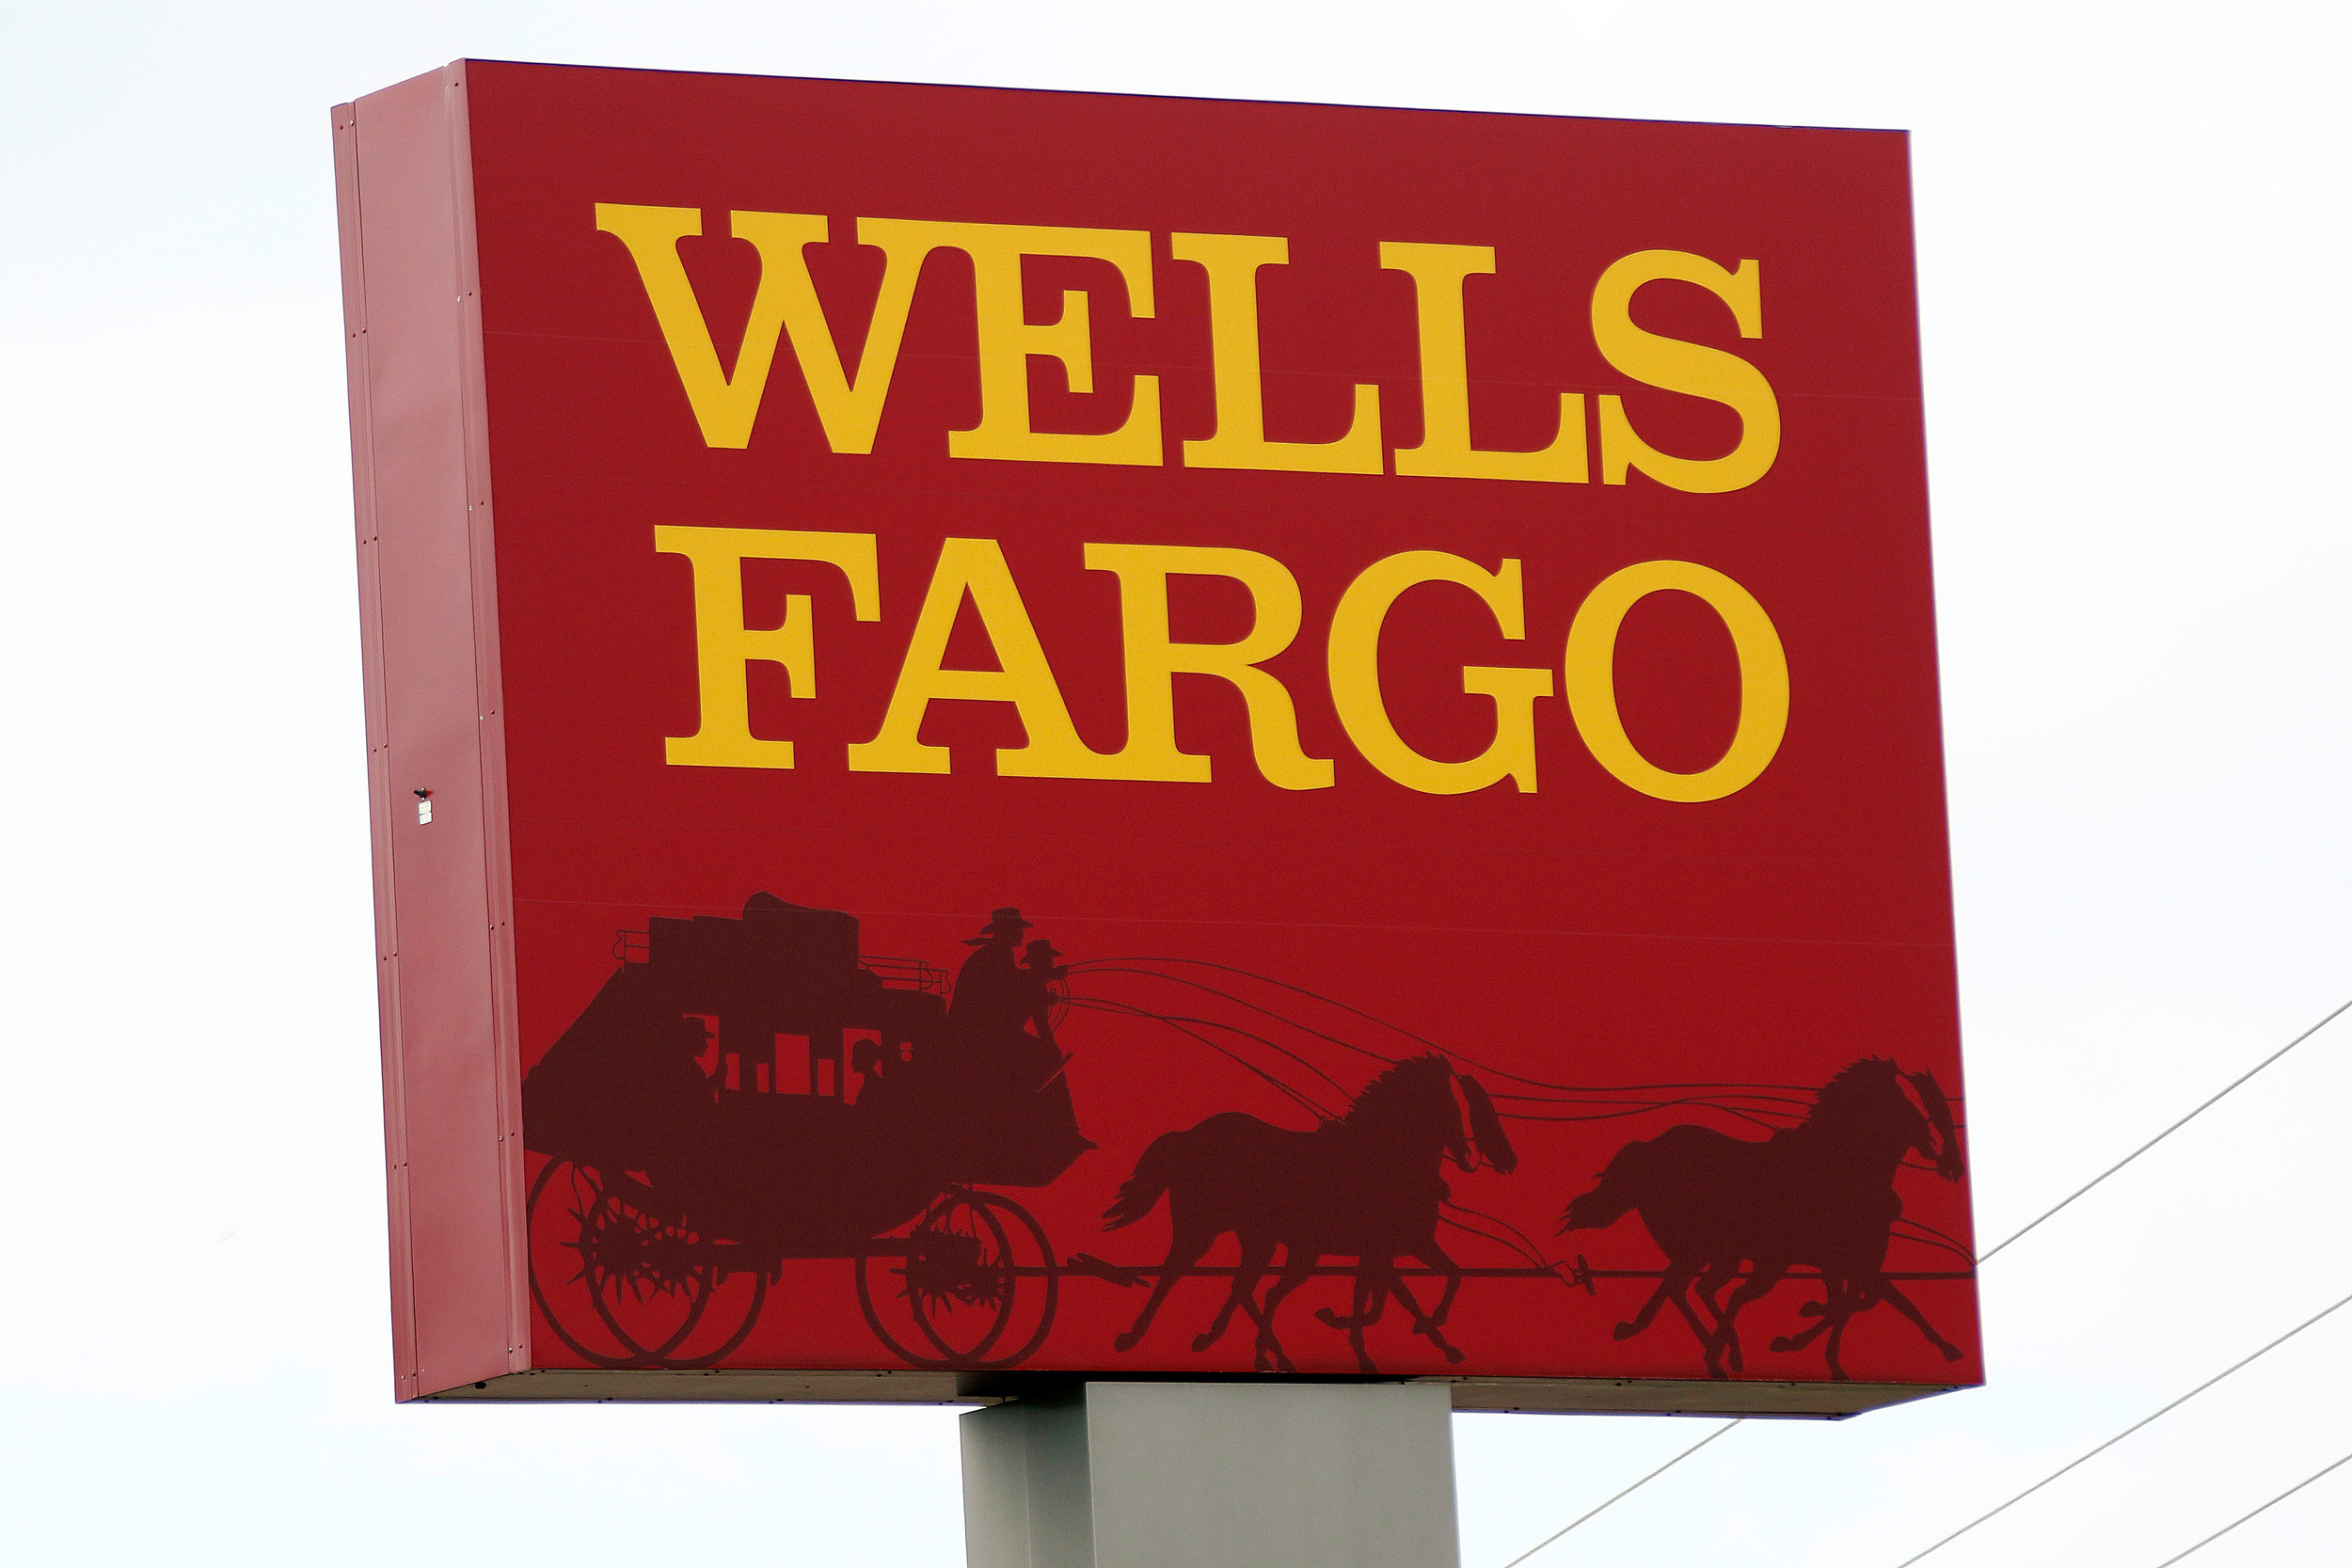 Wells Fargo Fake Bank Accounts: 1.4 Million More Found